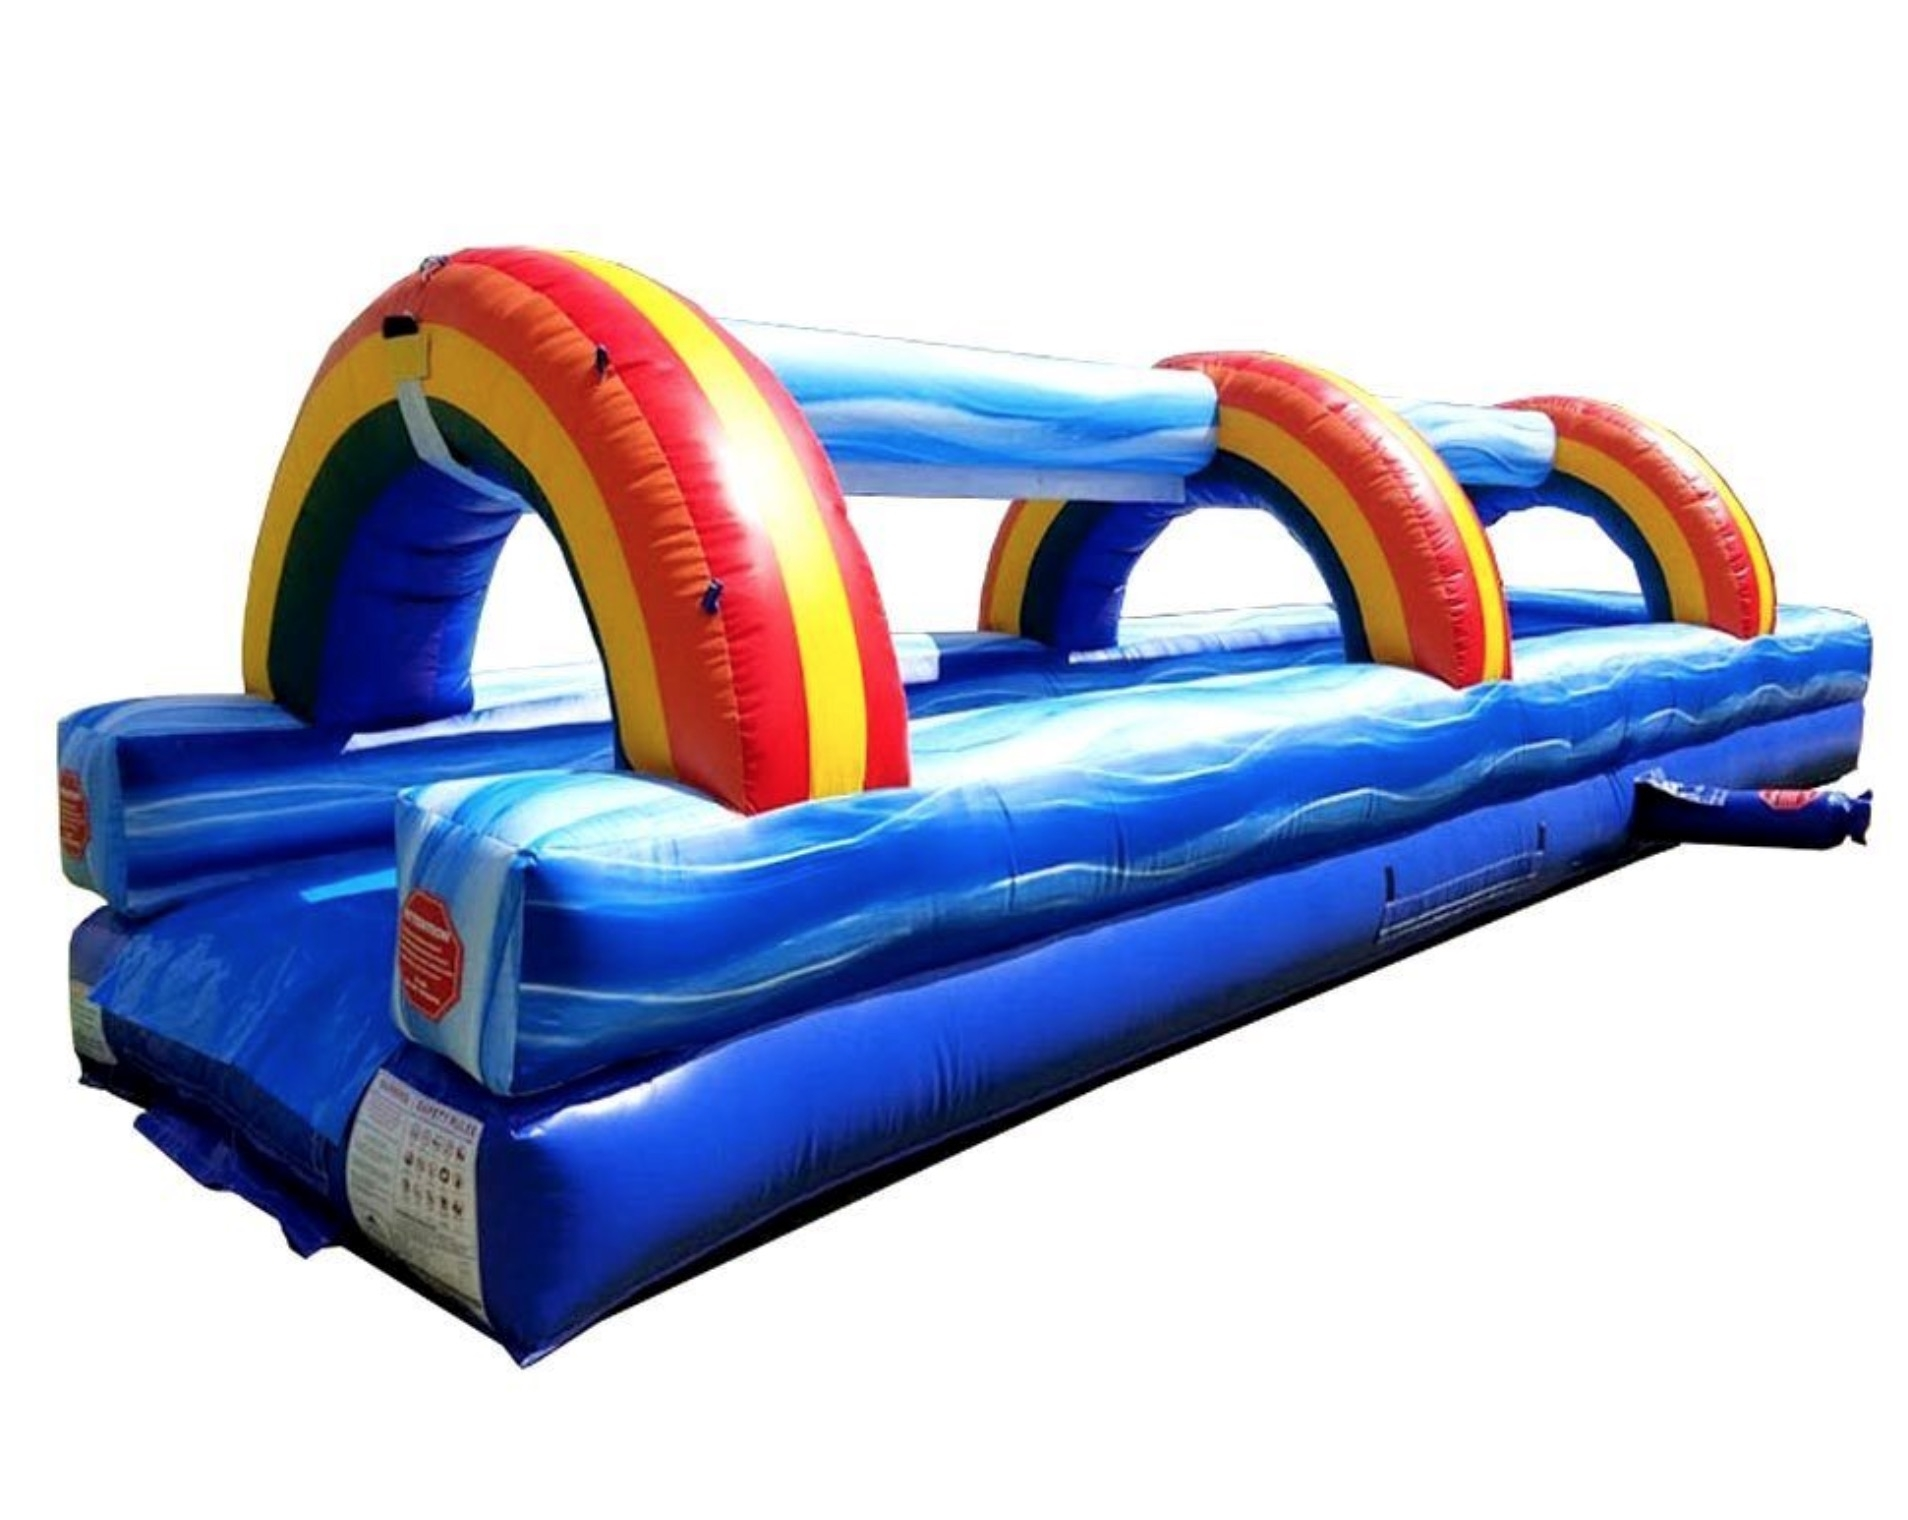 Rainbow Slip Slide Rental